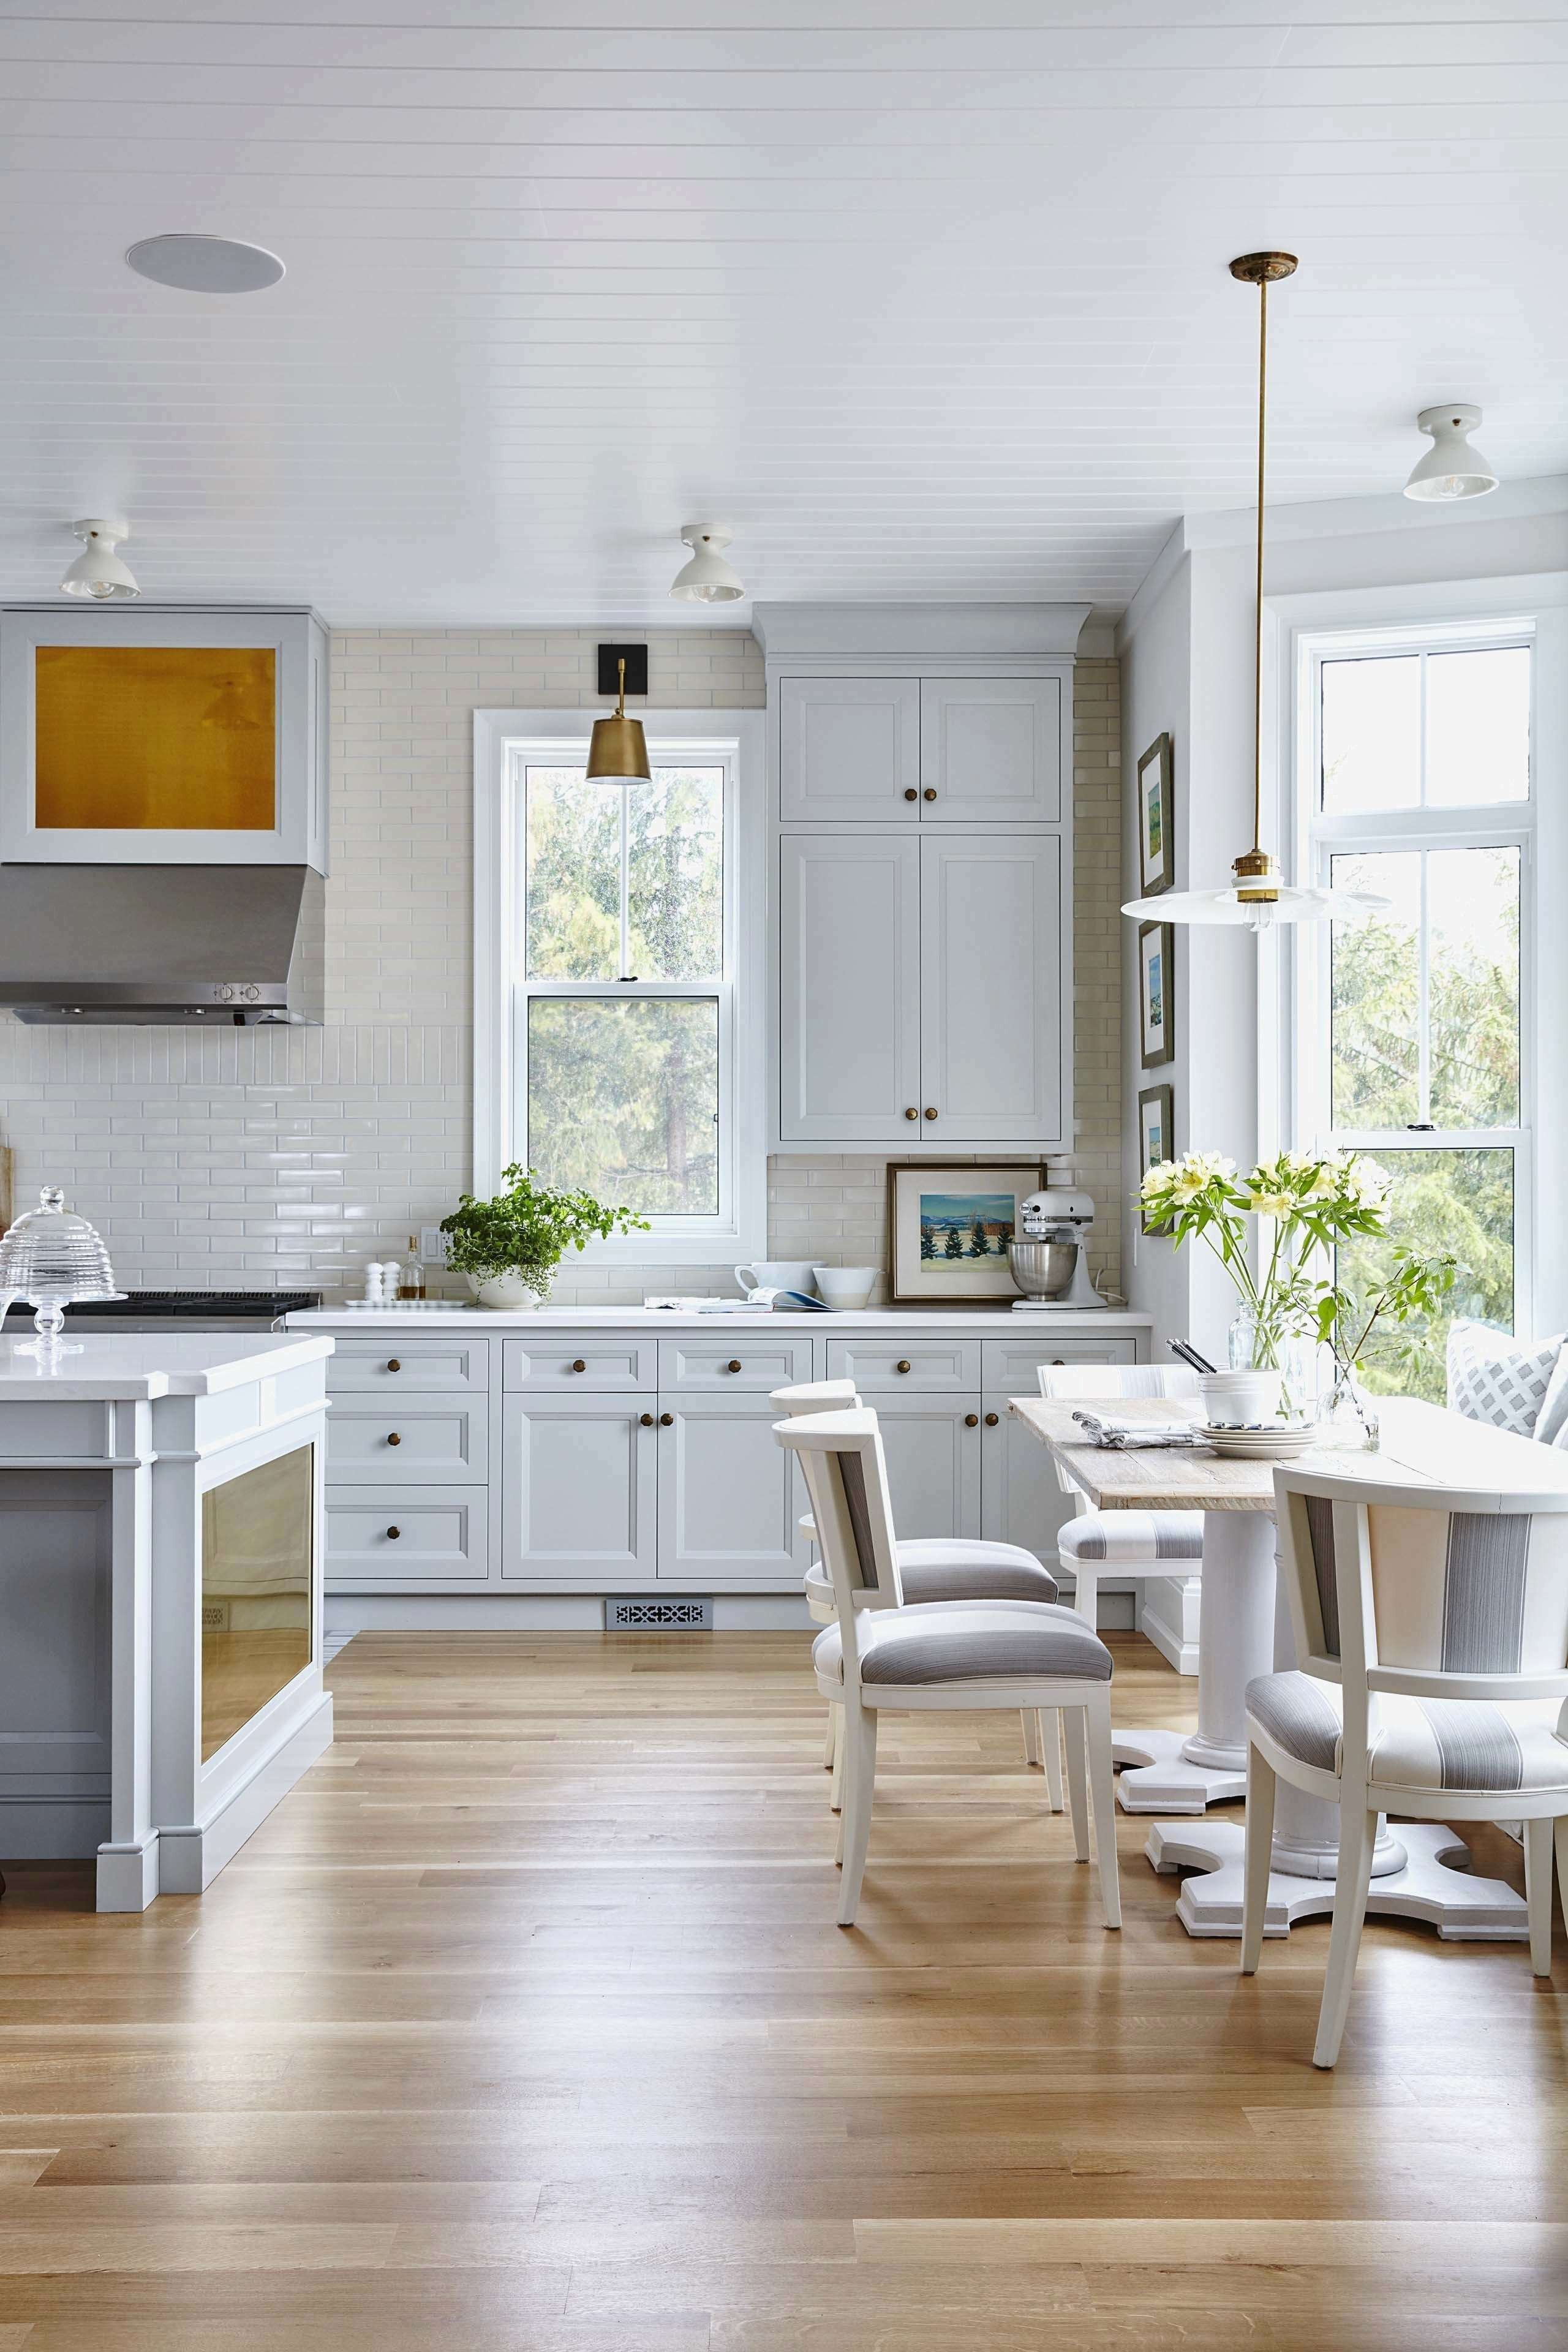 Best Of Ikea Parquet Flottant White Kitchen Decor Kitchen Design Pictures Kitchen Design